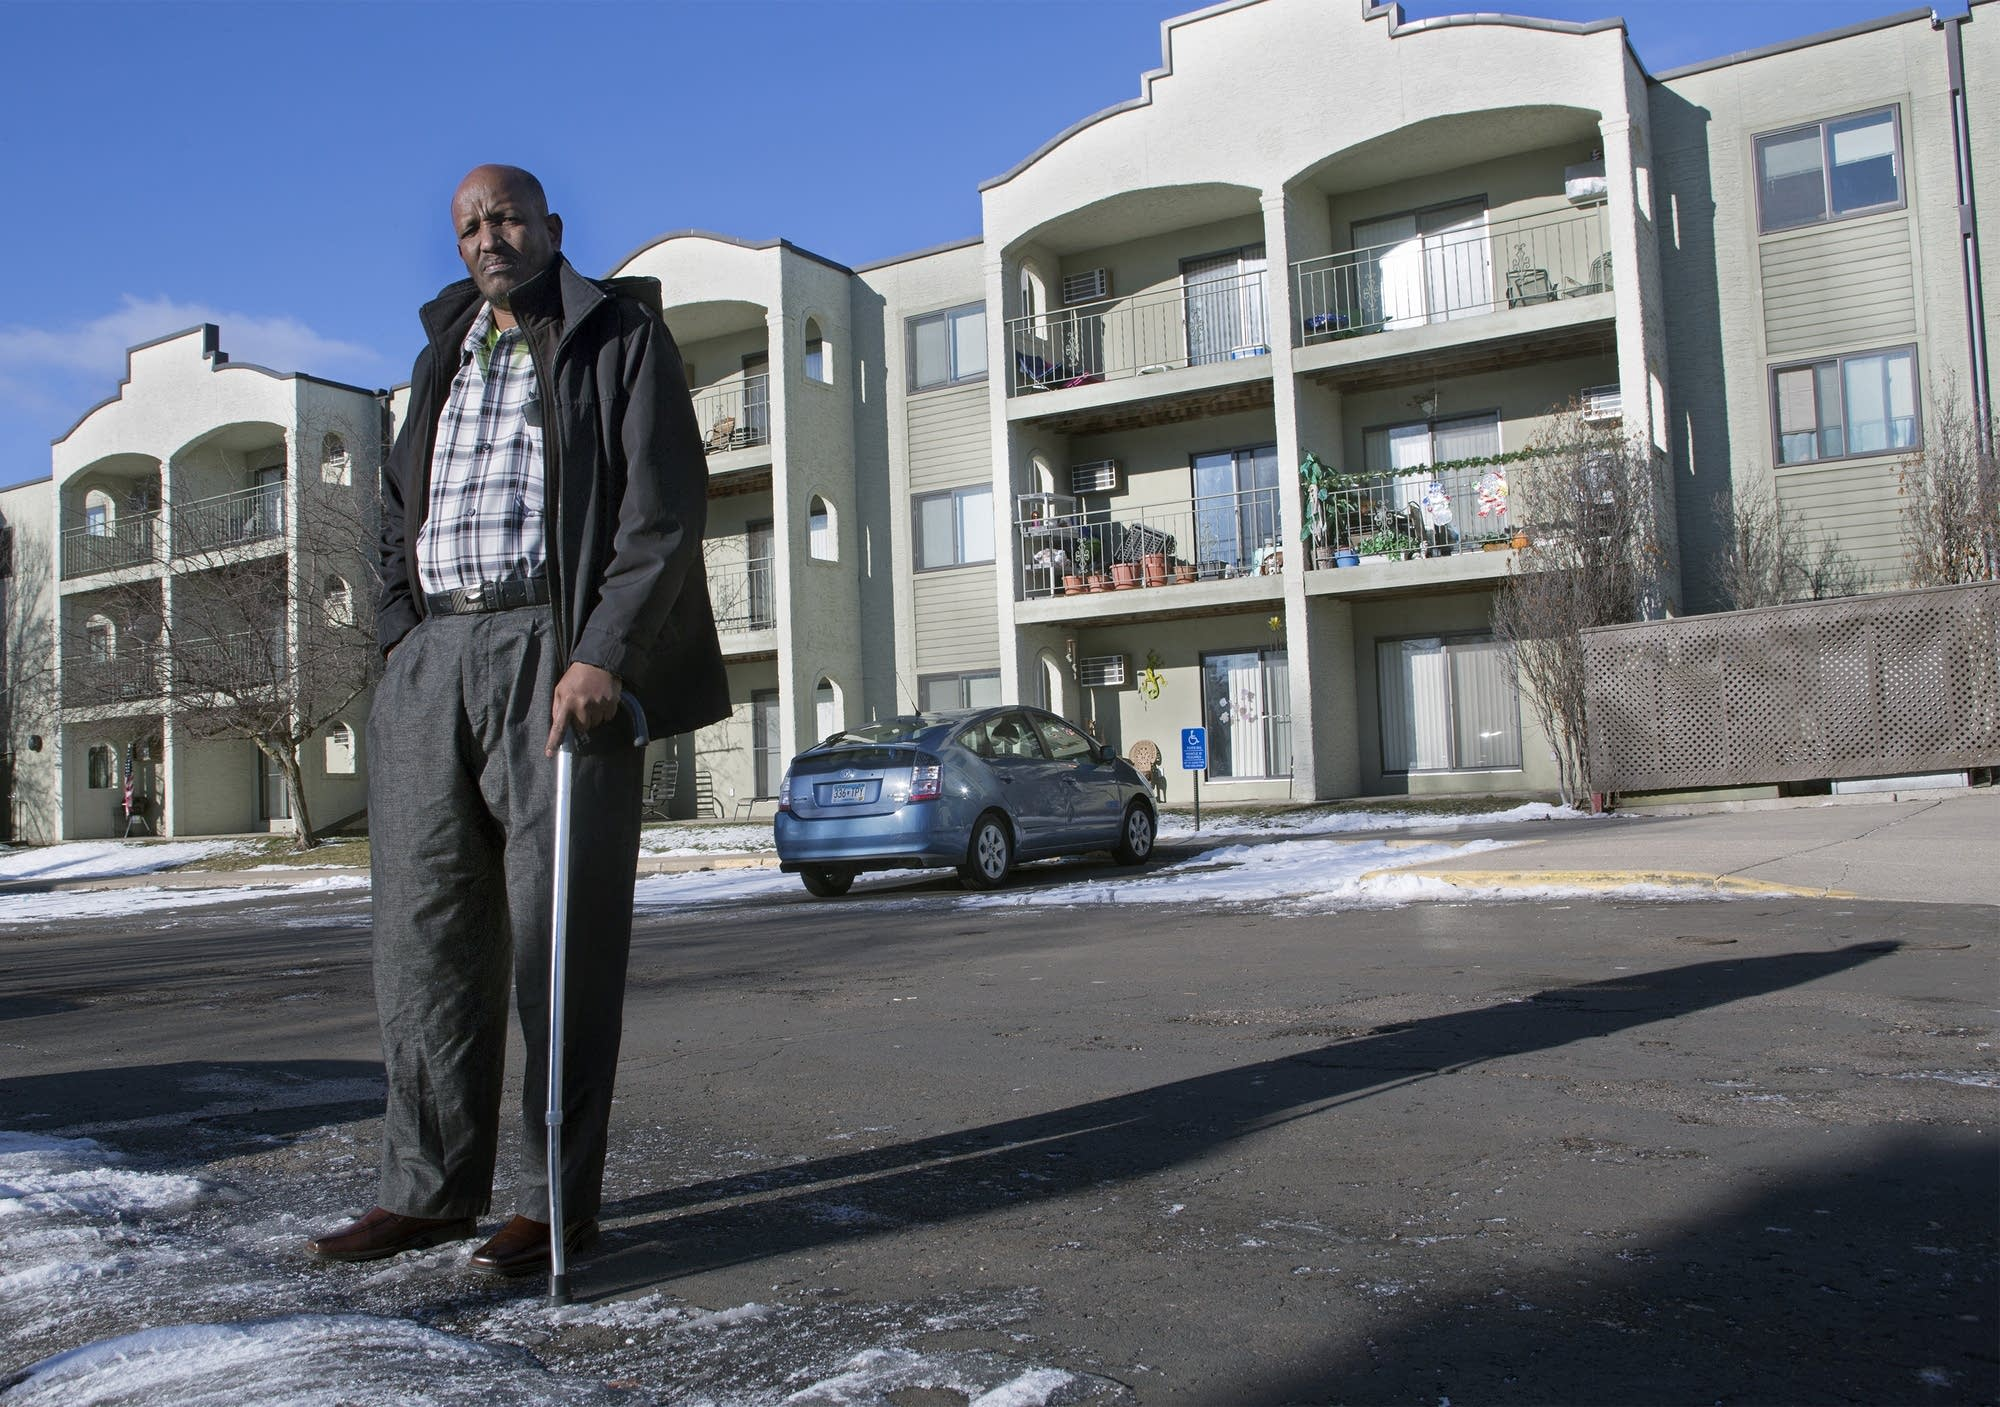 Mahamed Iye stands in front of the apartment complex where he lives.